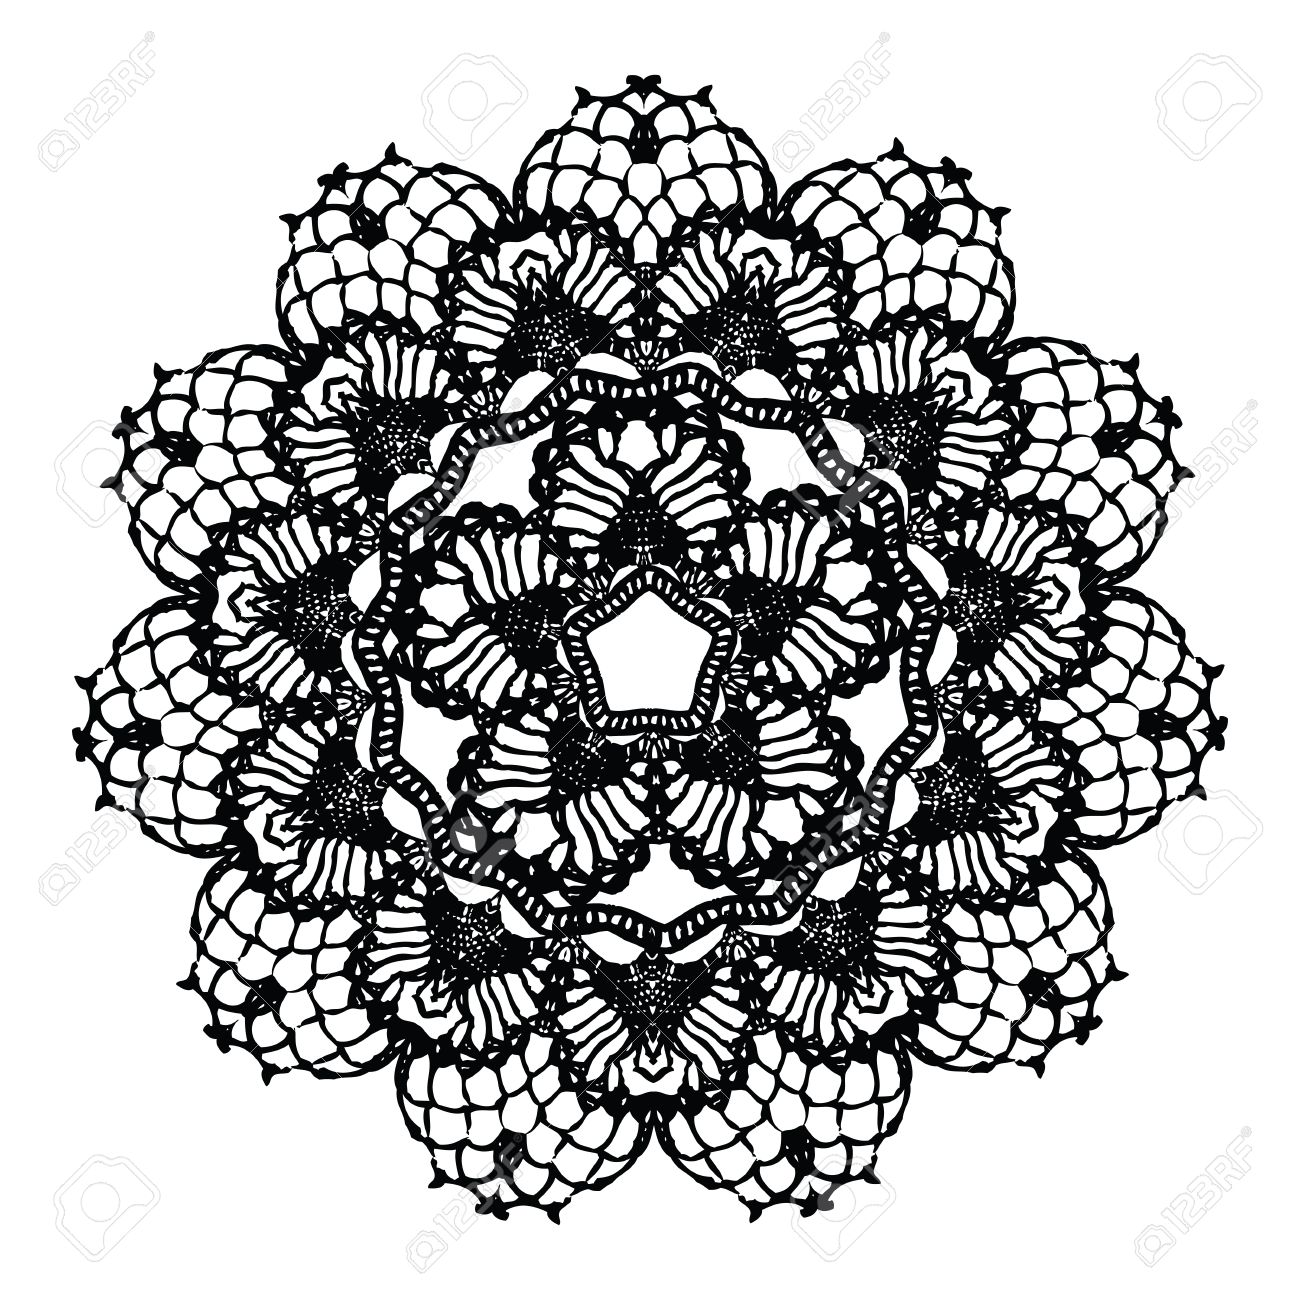 new concept best sale better Black crochet doily. Vector illustration. May be used for digital..